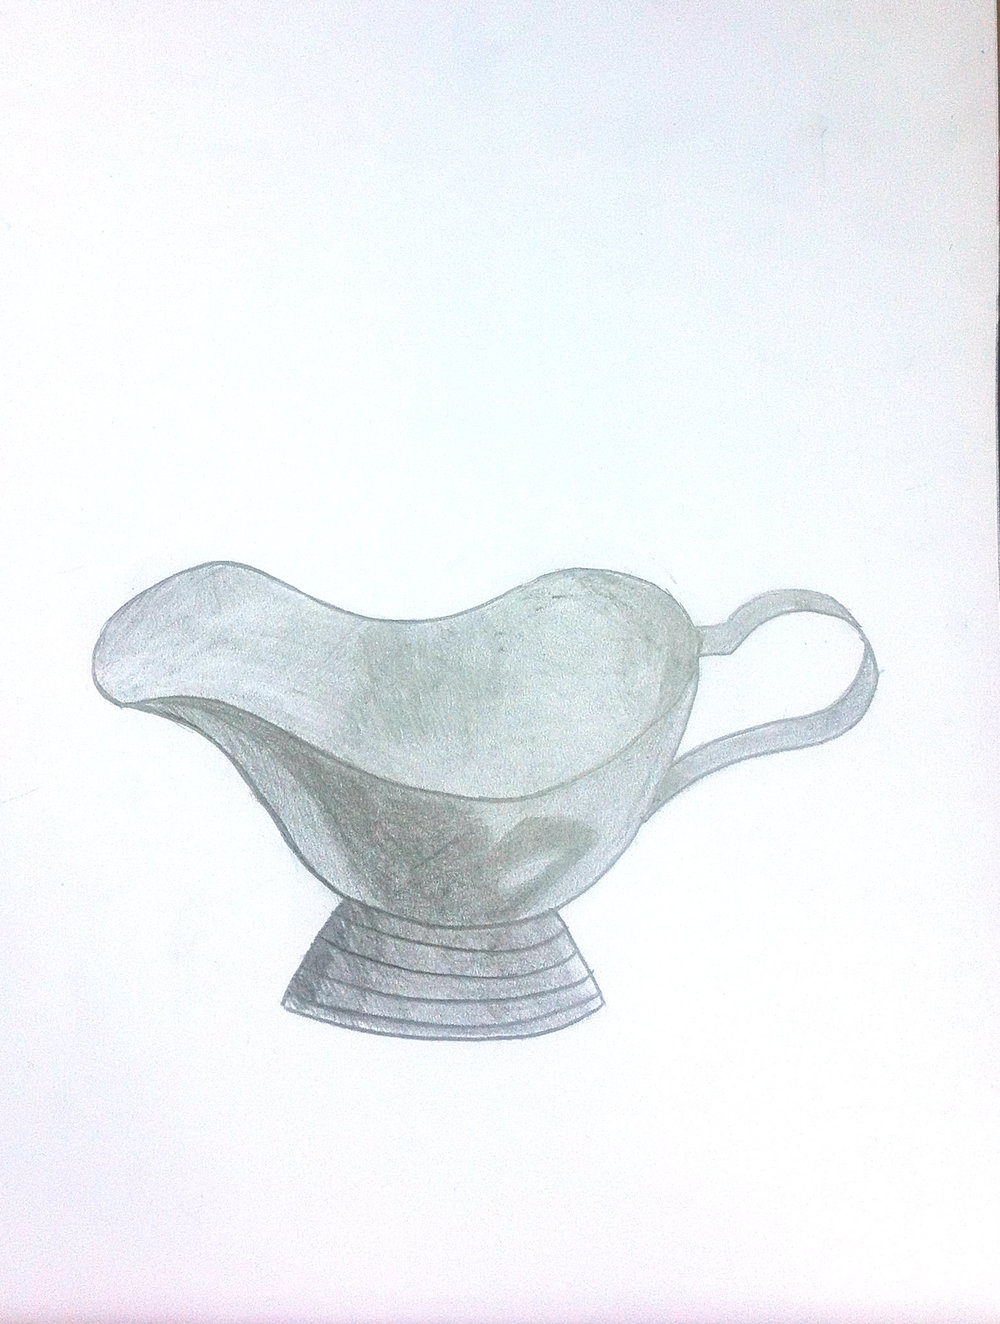 Metal pitcher by 12 year old student